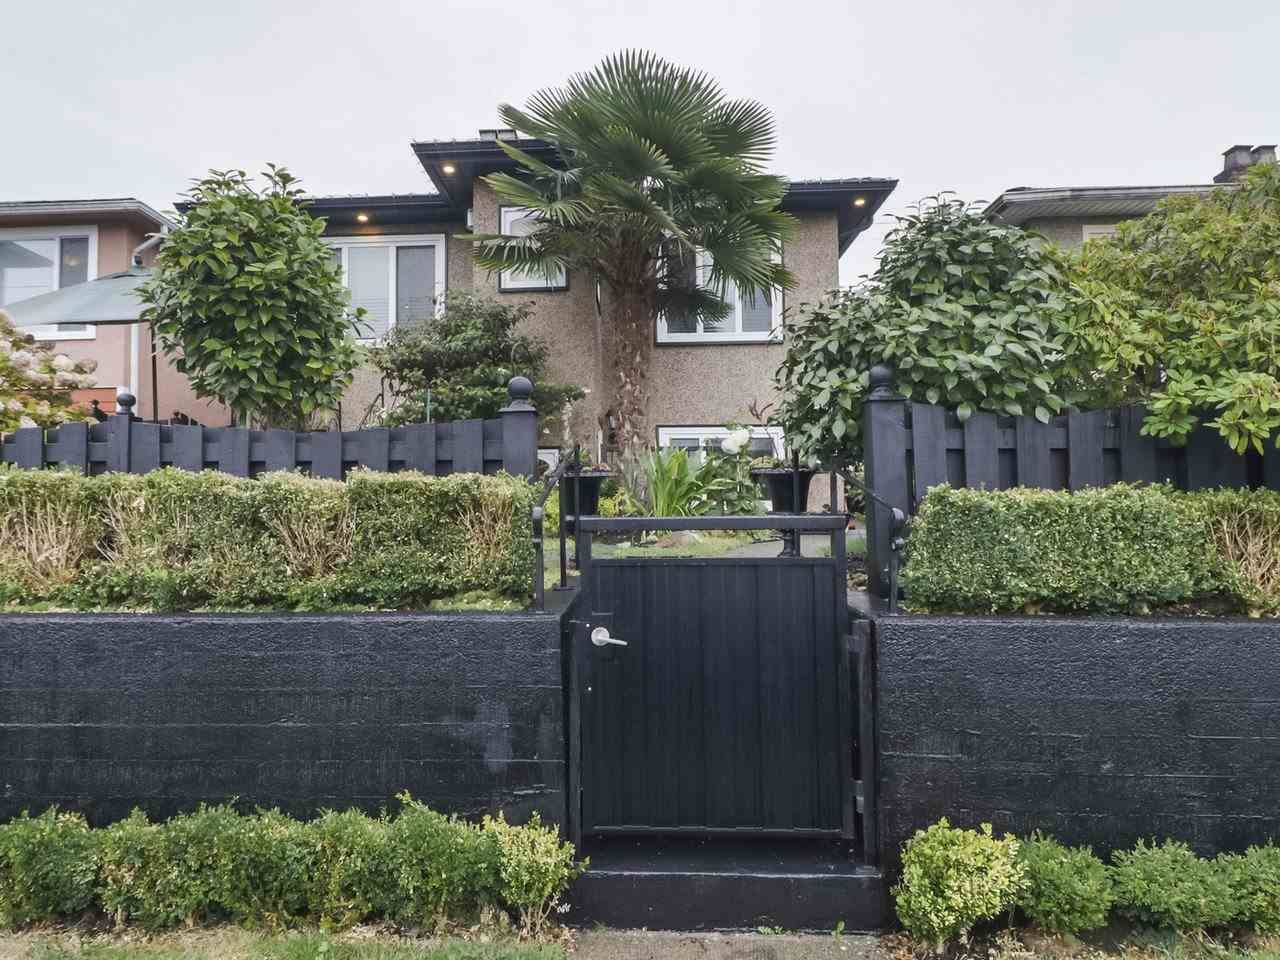 Main Photo: 4752 VICTORIA DRIVE in Vancouver: Victoria VE House for sale (Vancouver East)  : MLS®# R2406060